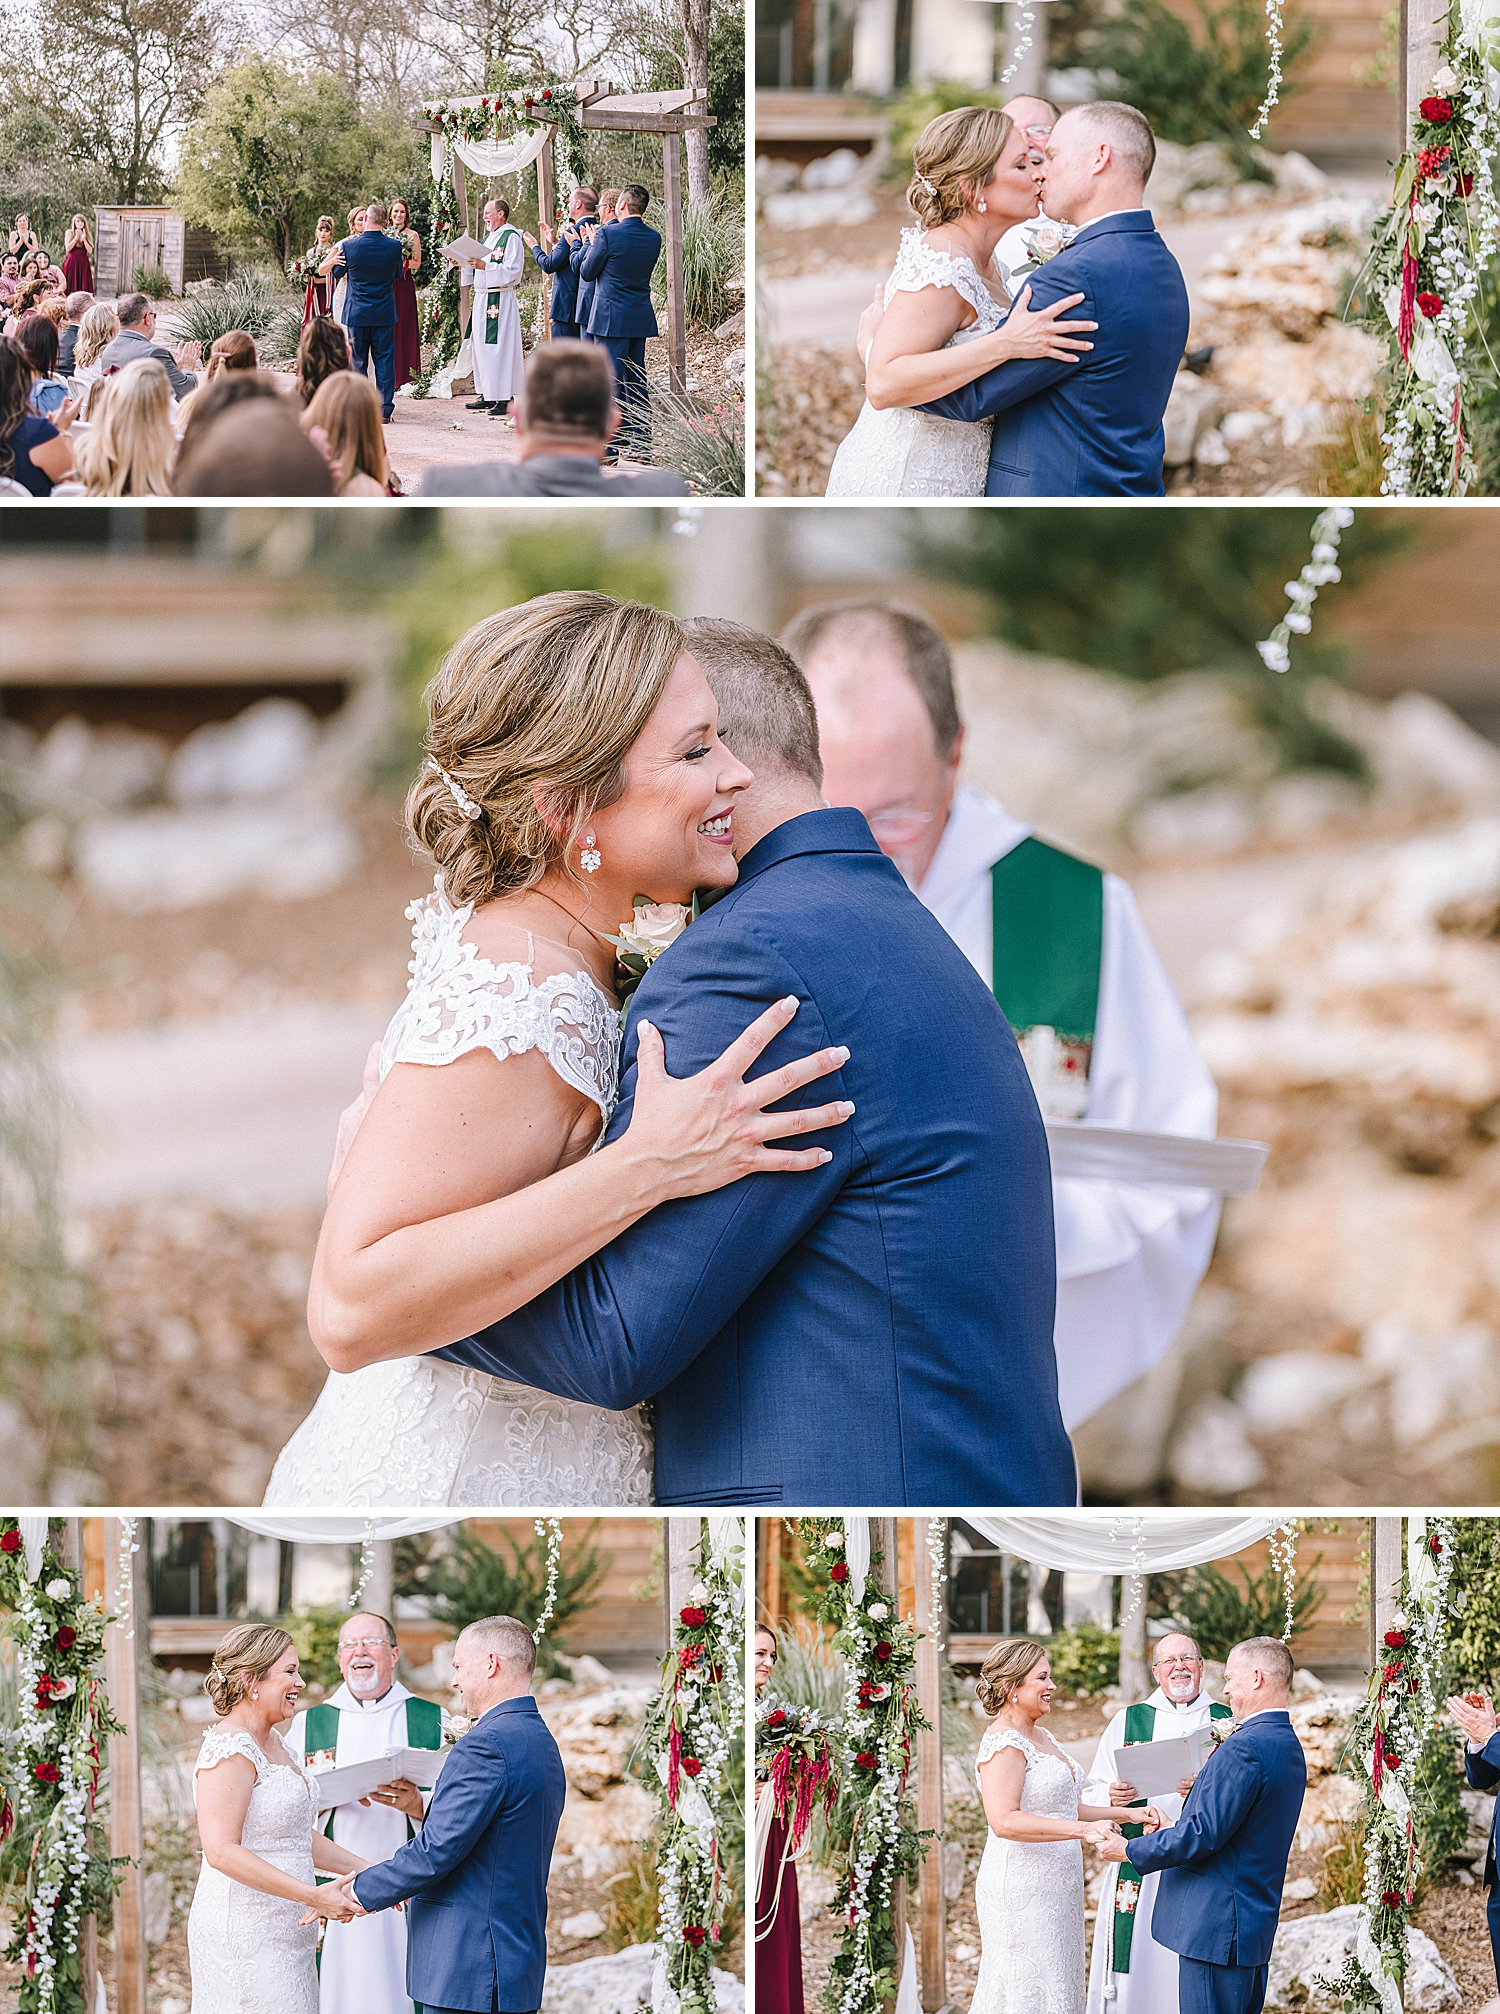 Geronimo-Oaks-Wedding-Venue-Seguin-Texas-Elegant-Navy-Burgundy-Wedding-Carly-Barton-Photography_0030.jpg